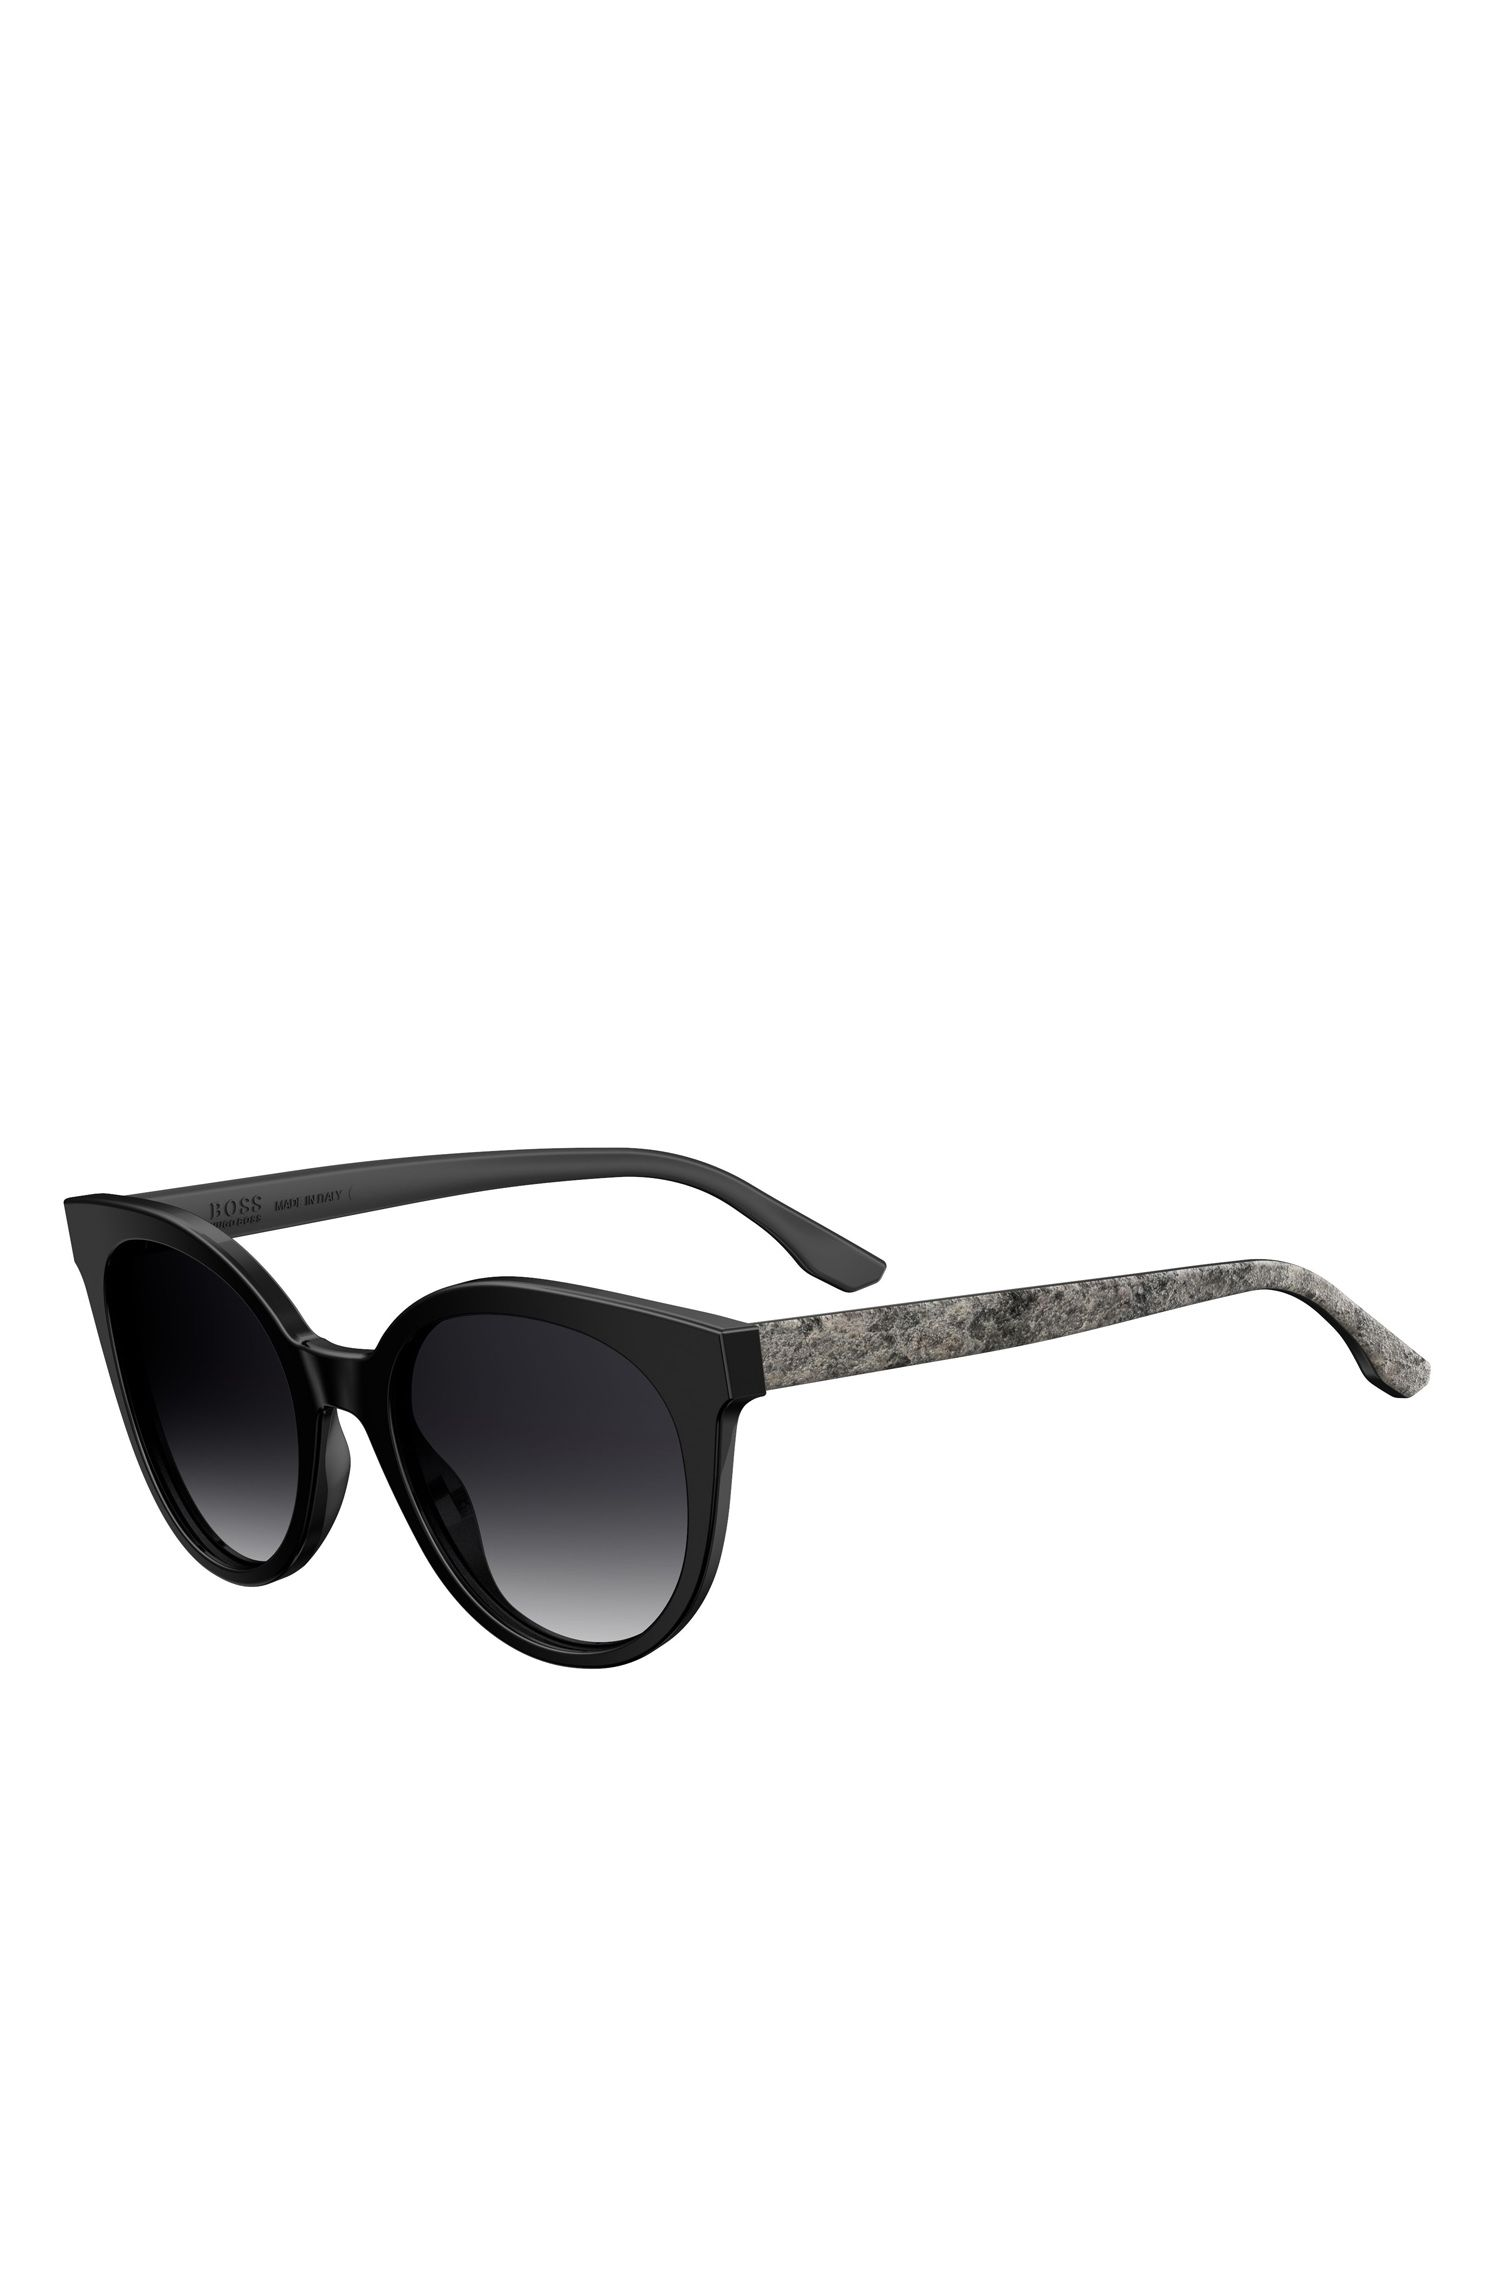 'BOSS 0890S' | Black Acetate Round Sunglasses